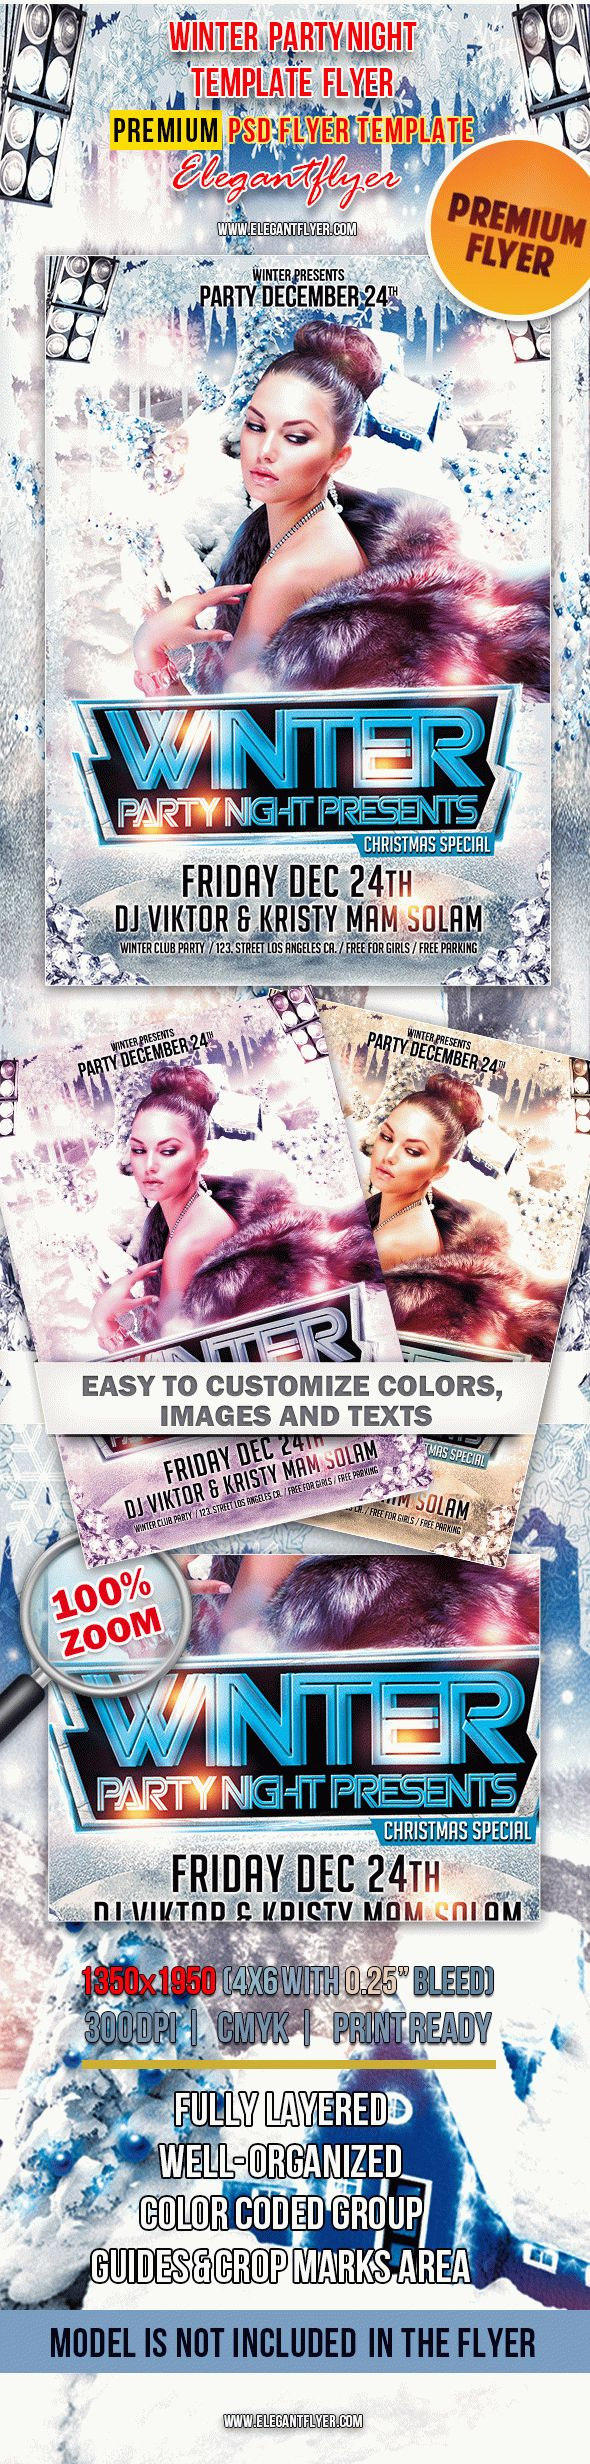 Winter Party Club Flyer in PSD